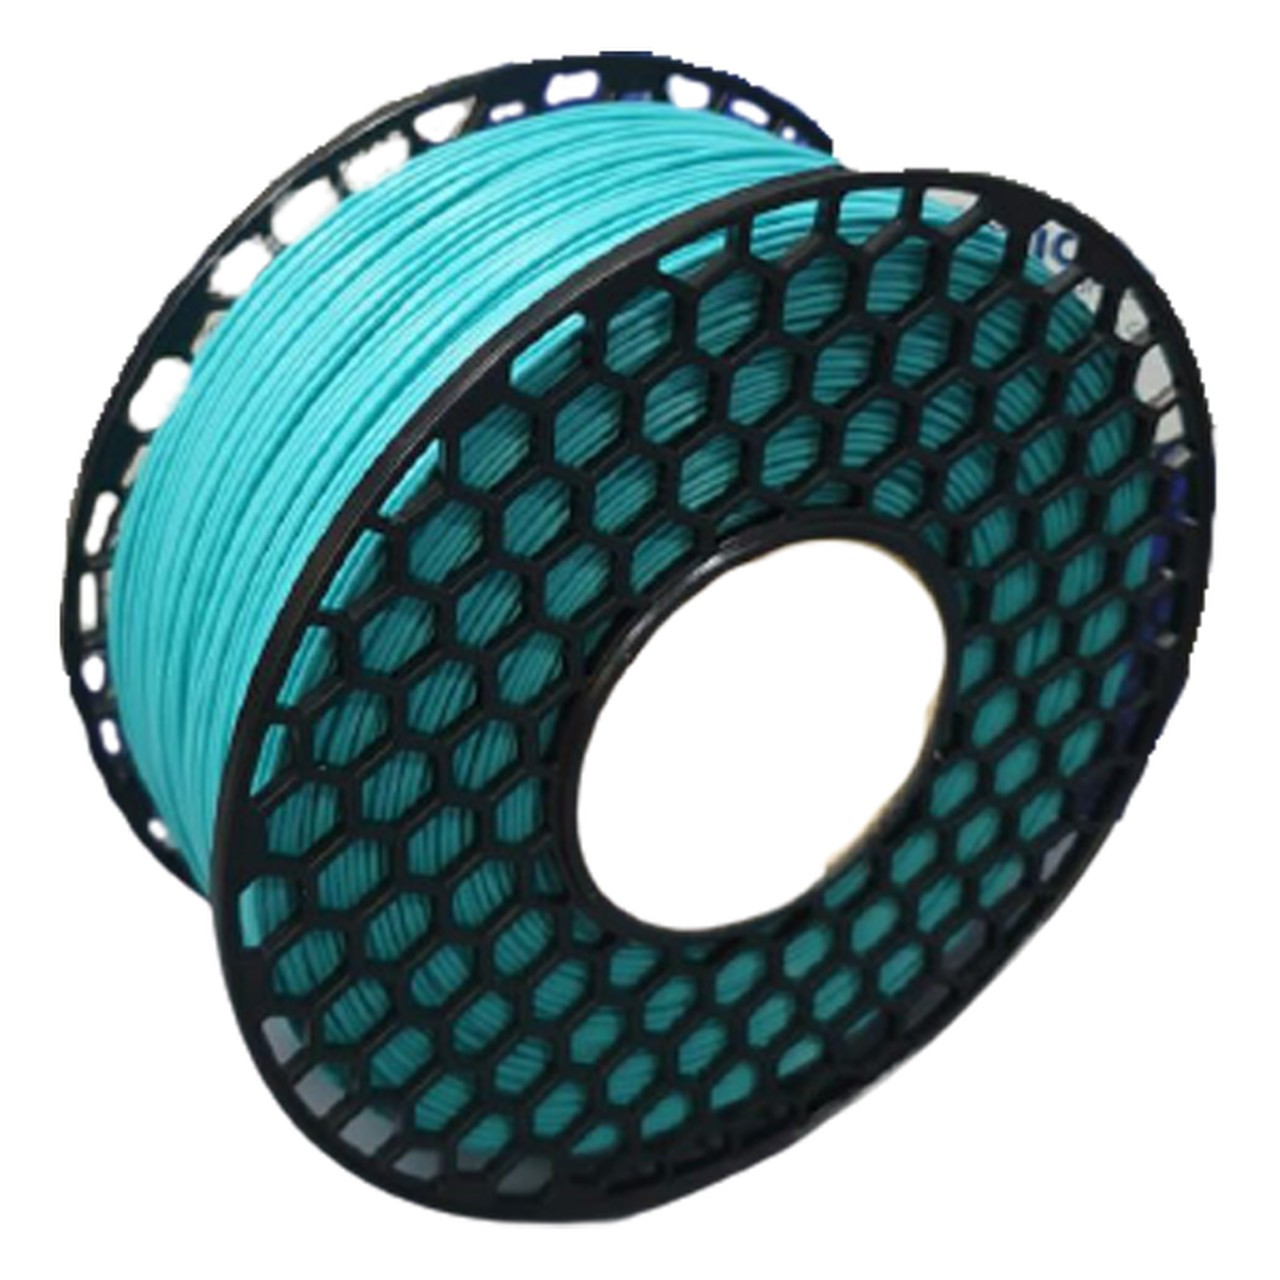 Filamento ABS - Azul Tifanny - Premium MG94 - National 3D - 1.75mm - 1kg